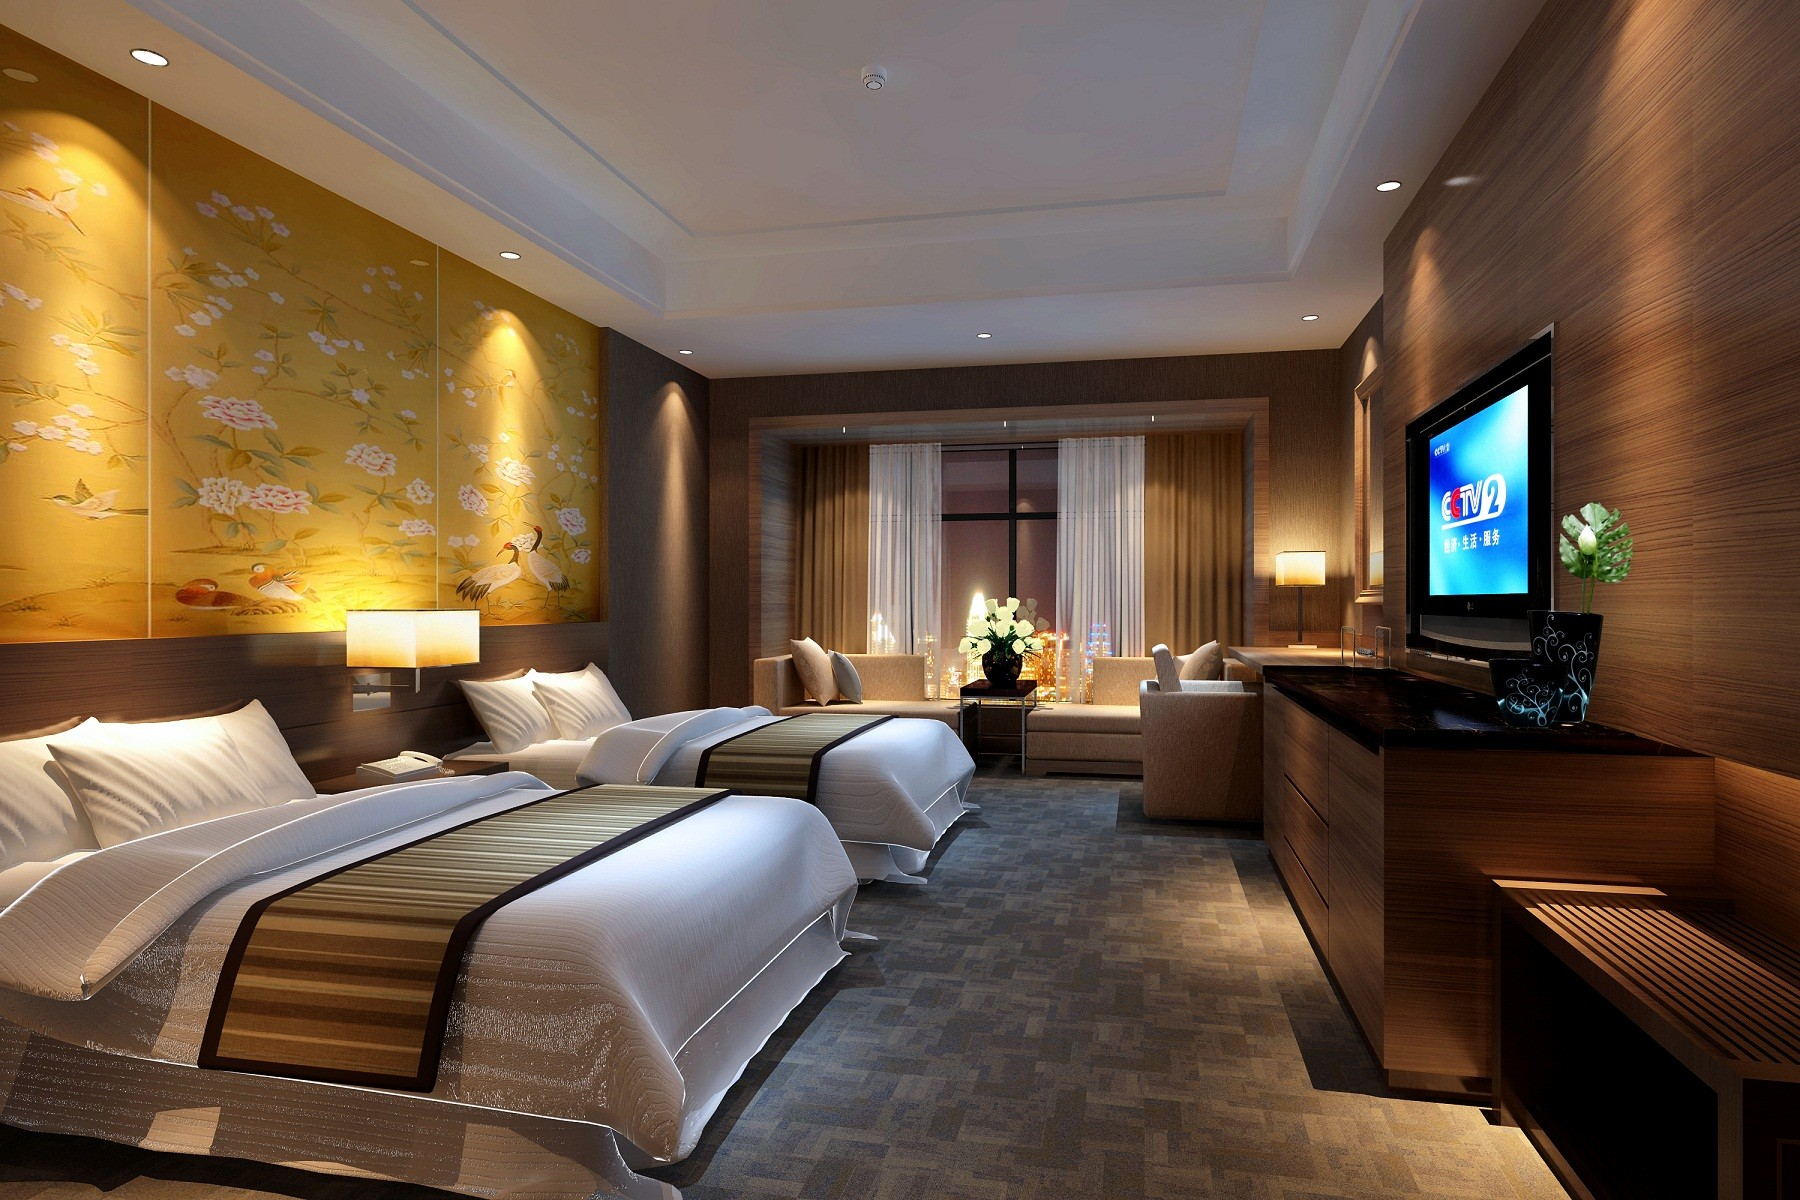 Accommodations for 5 star bedroom designs